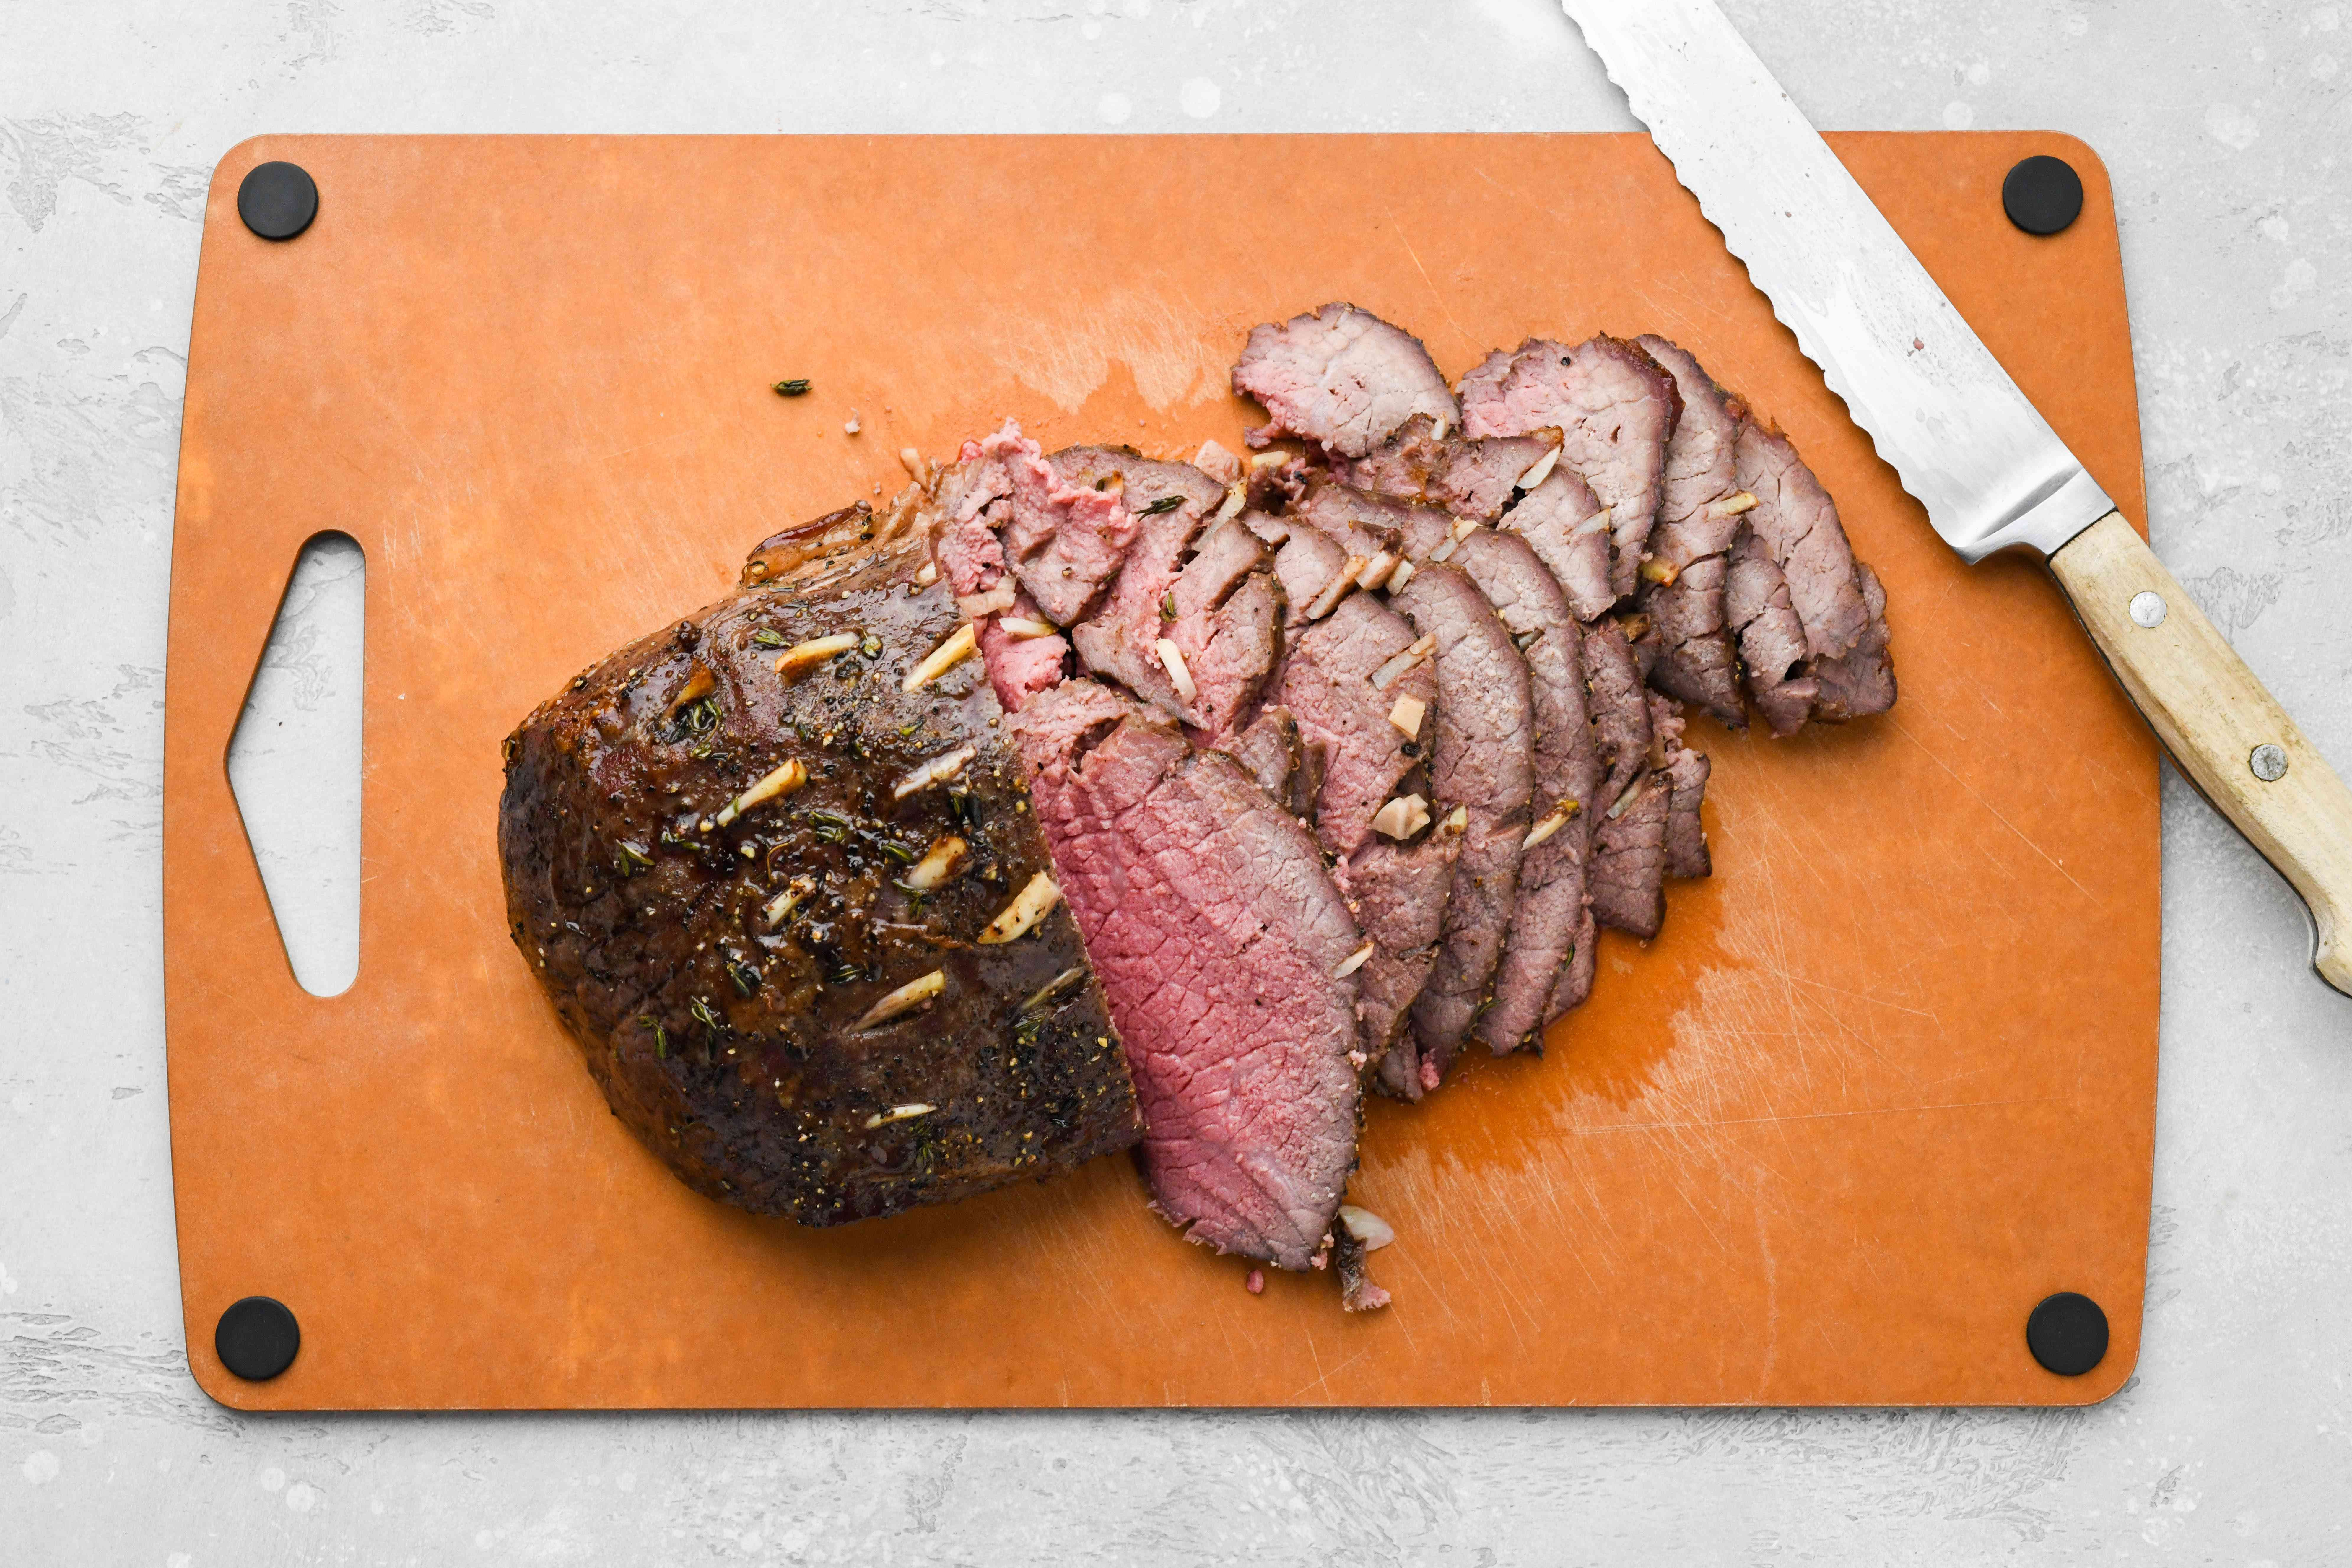 Thinly slice the roast beef on a cutting board